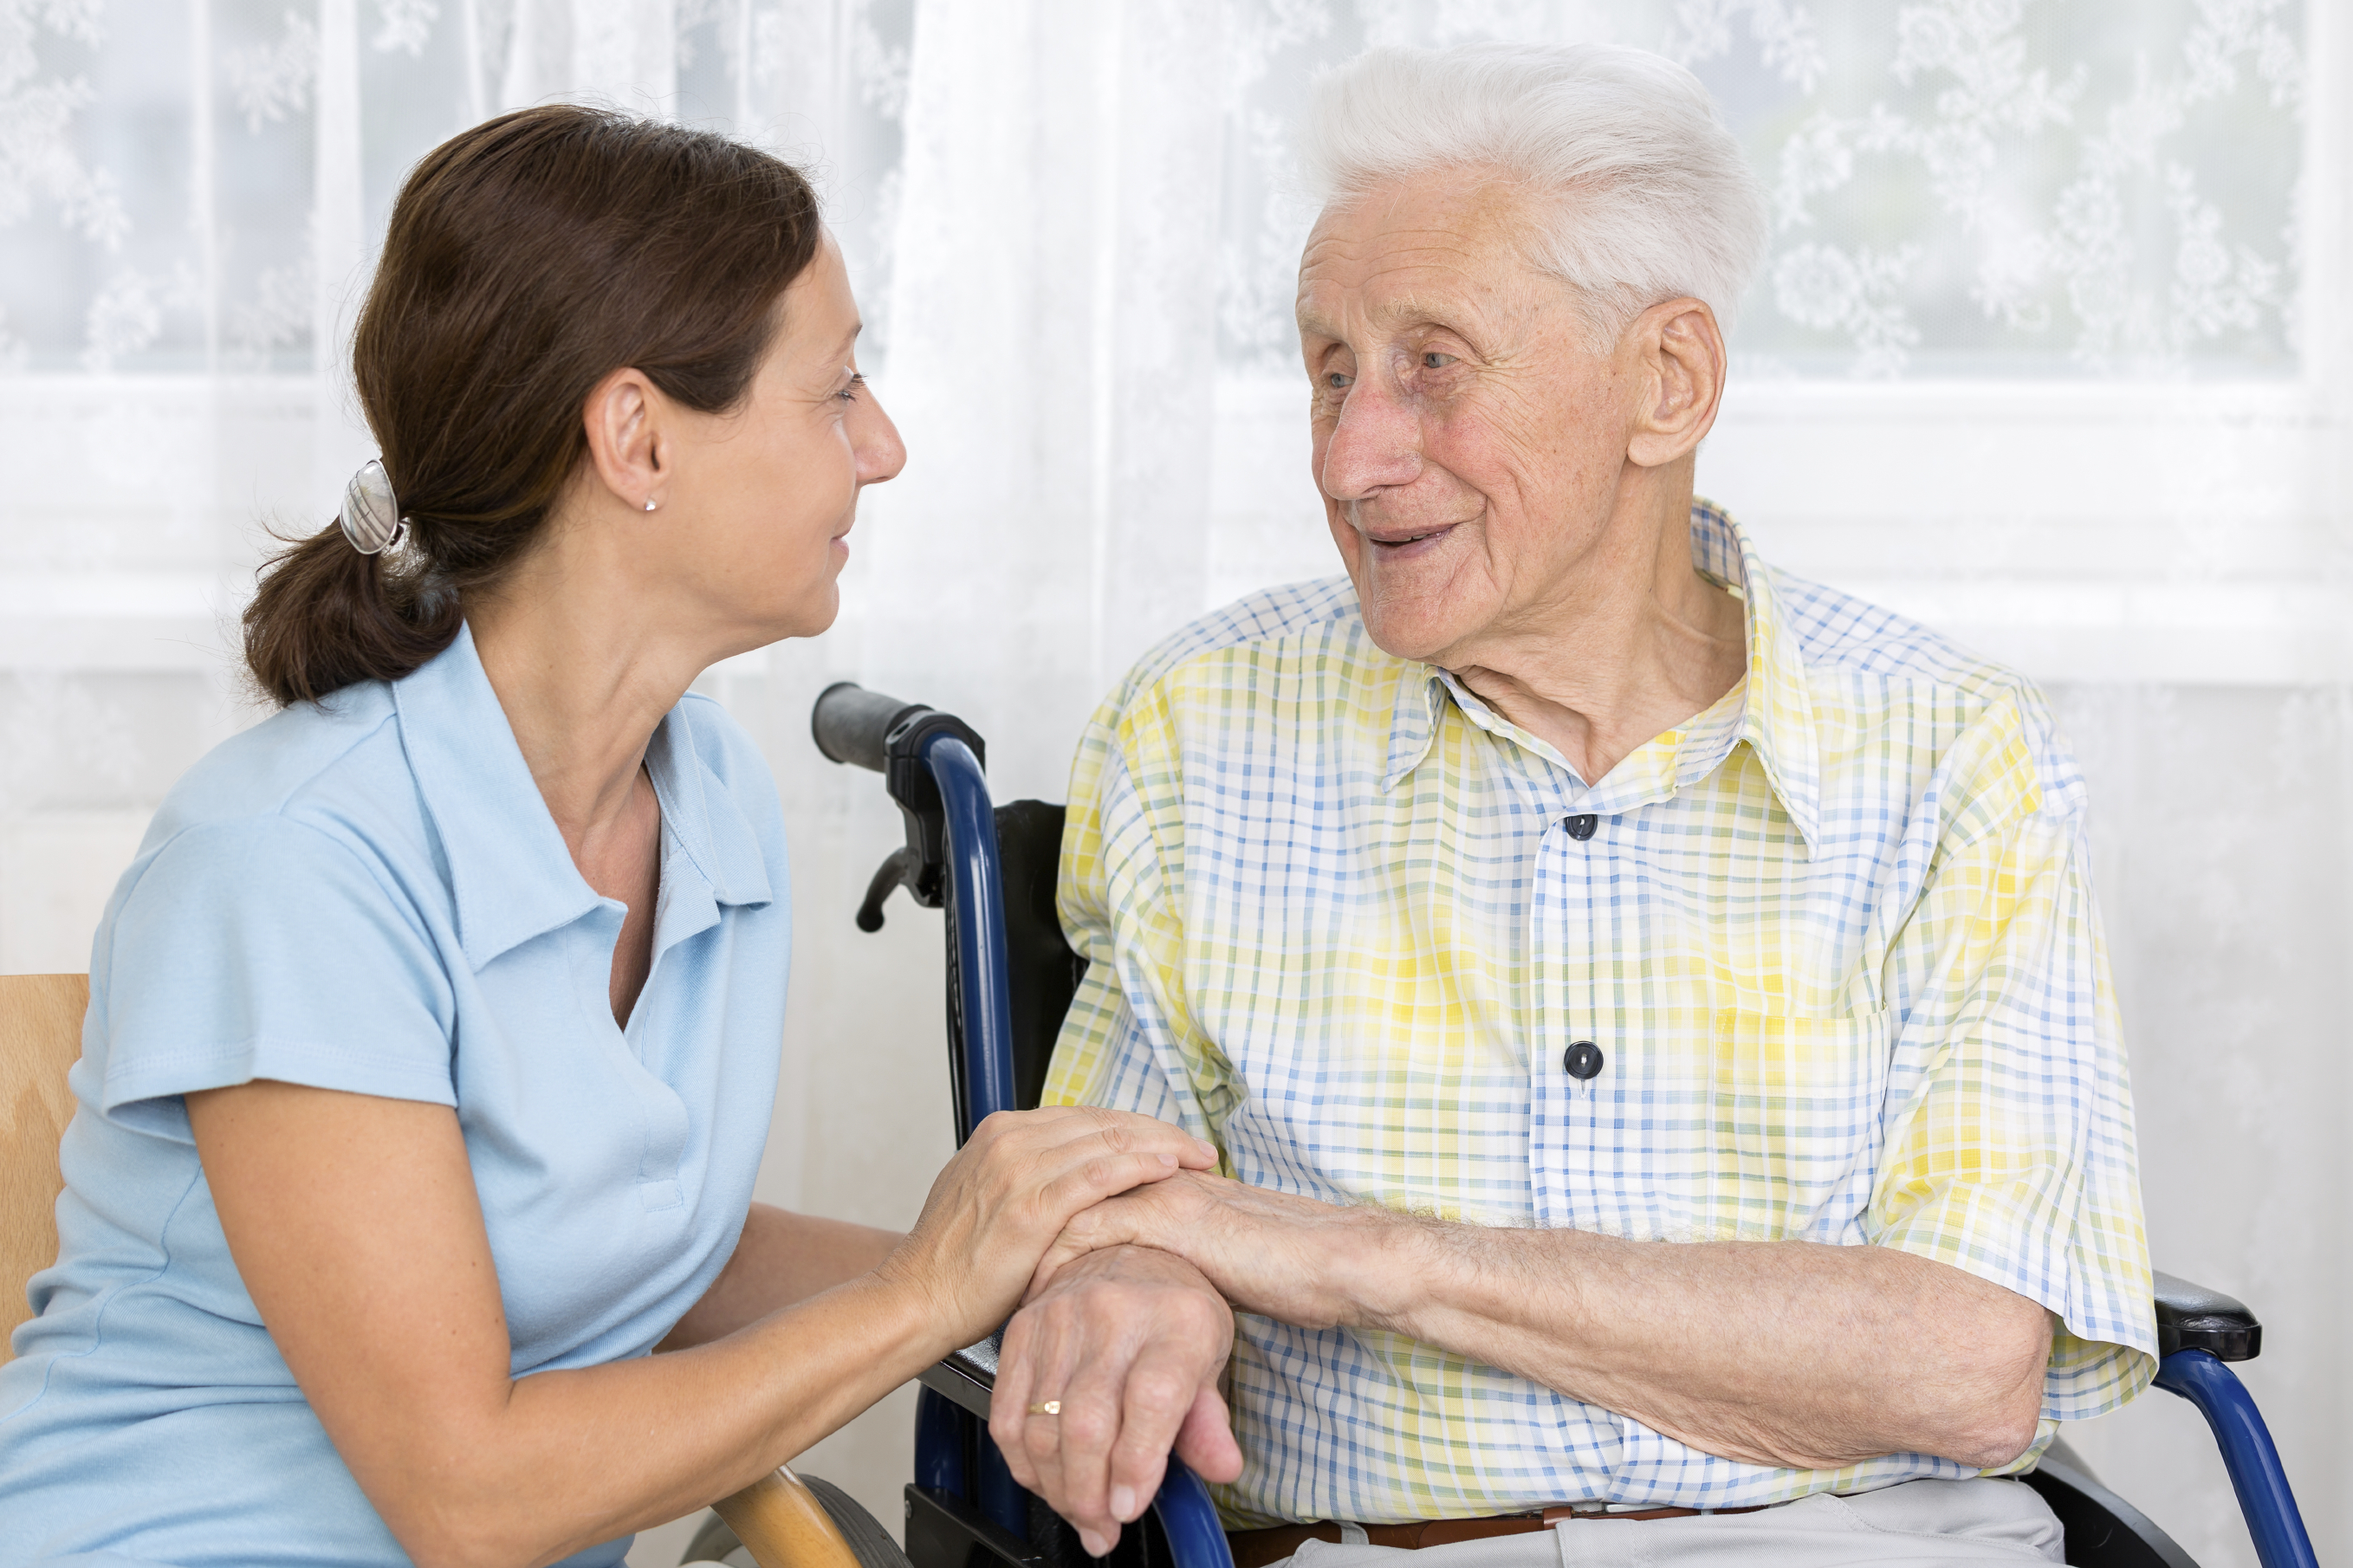 Home Care Service Home Health Care Services Personal Assistance Cater 2 U Agency